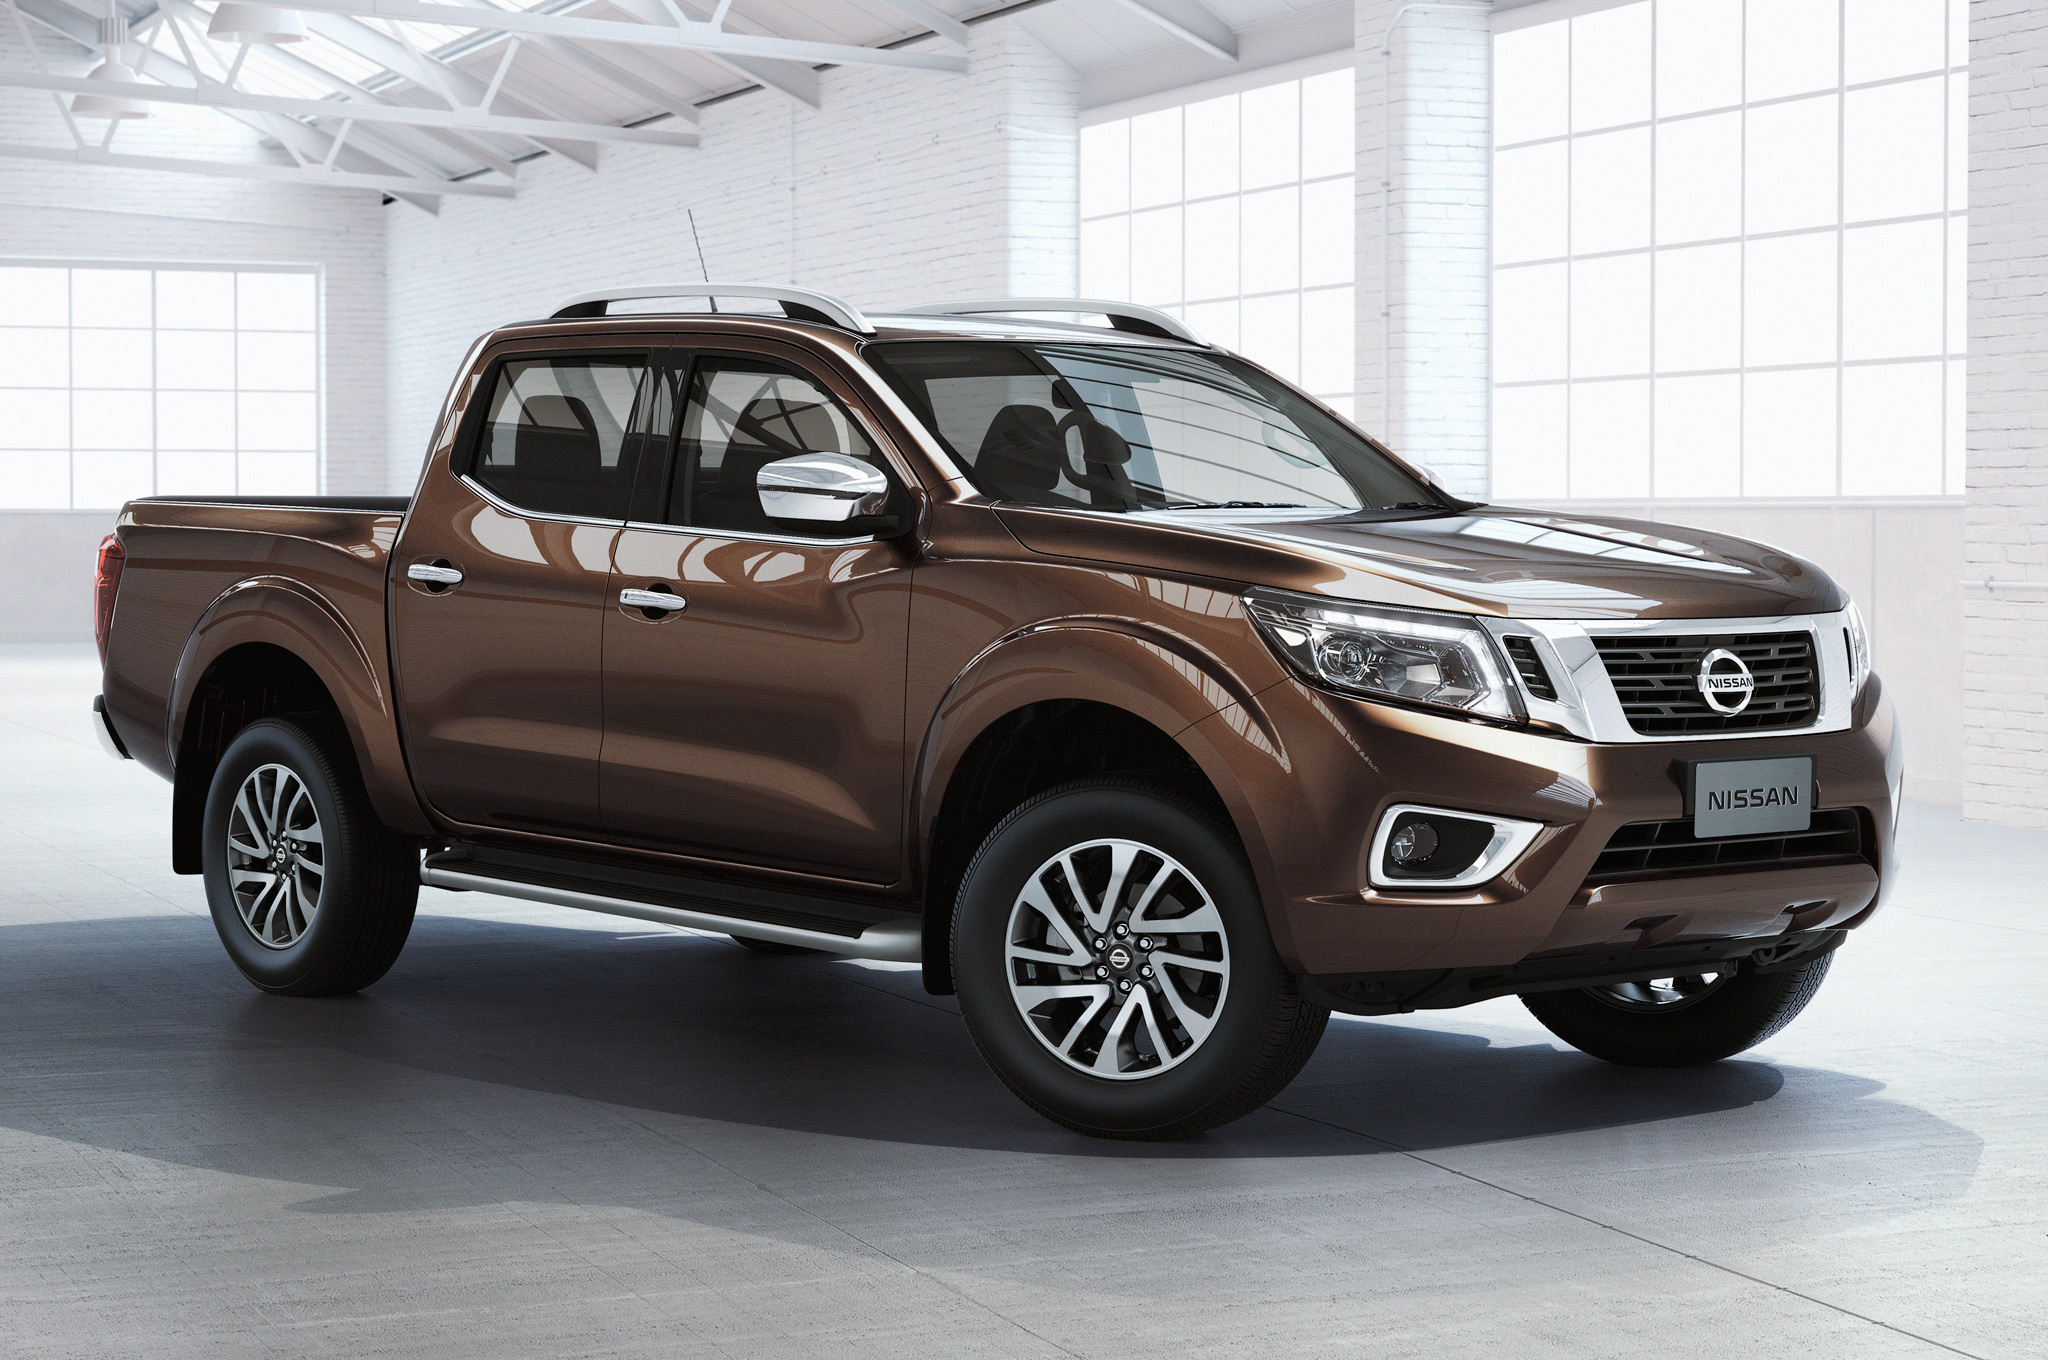 2015 All New Nissan Np300 Navara Facelift (Photo 2 of 6)